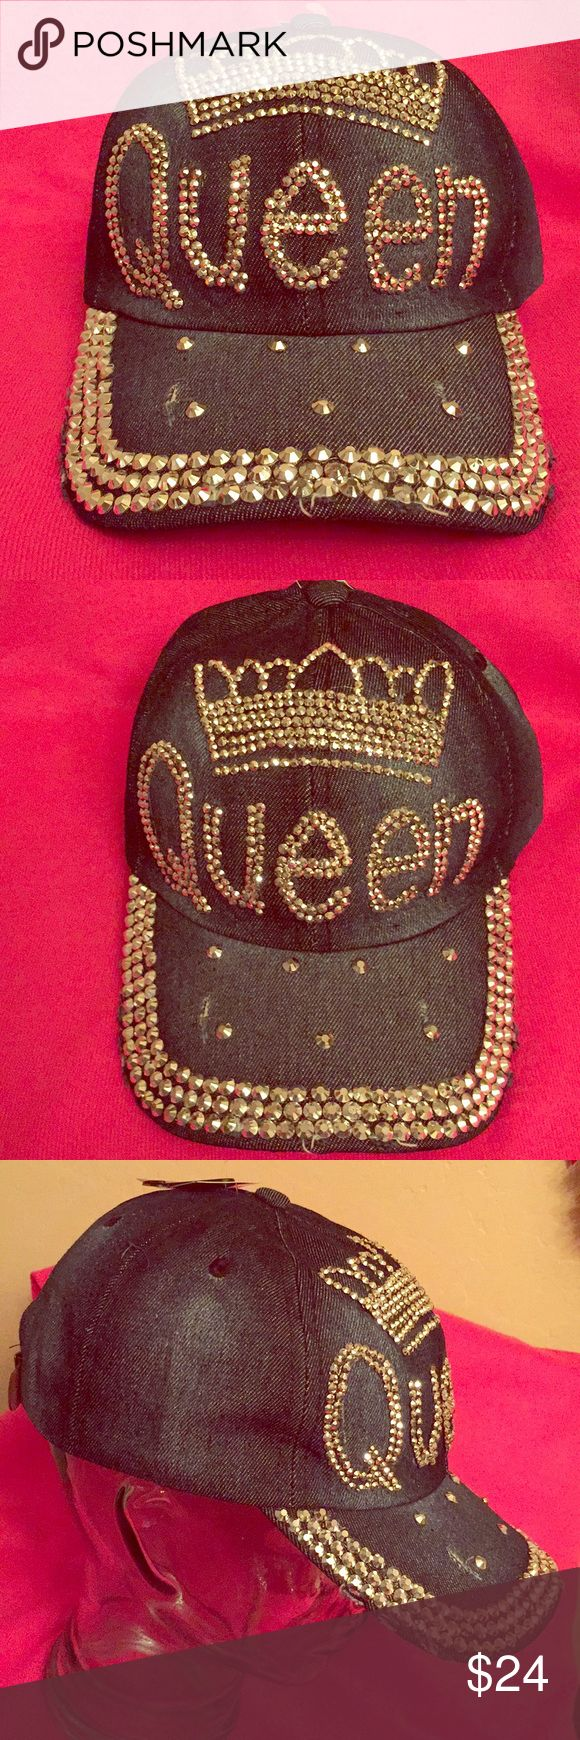 🆕 ONLY 2! Queen Studded Bling Cap Bling in the New Year Wearing Authentic NYC Underground Queen Studded Denim Cap. OS. Distressed Dark Blue Denim. Silver Studs spell out Queen with an Actual Studded Crown On Top. Studs also serve as Accents on the Front & the Bill. Frayed Bill. Vented. 100% Cotton. Adjustable Brown Vegan Leather Back. Brand New. Excellent Condition. No Trades. See Other Cool Caps in My Closet. 🧢🧢🧢 NYC Underground Accessories Hats